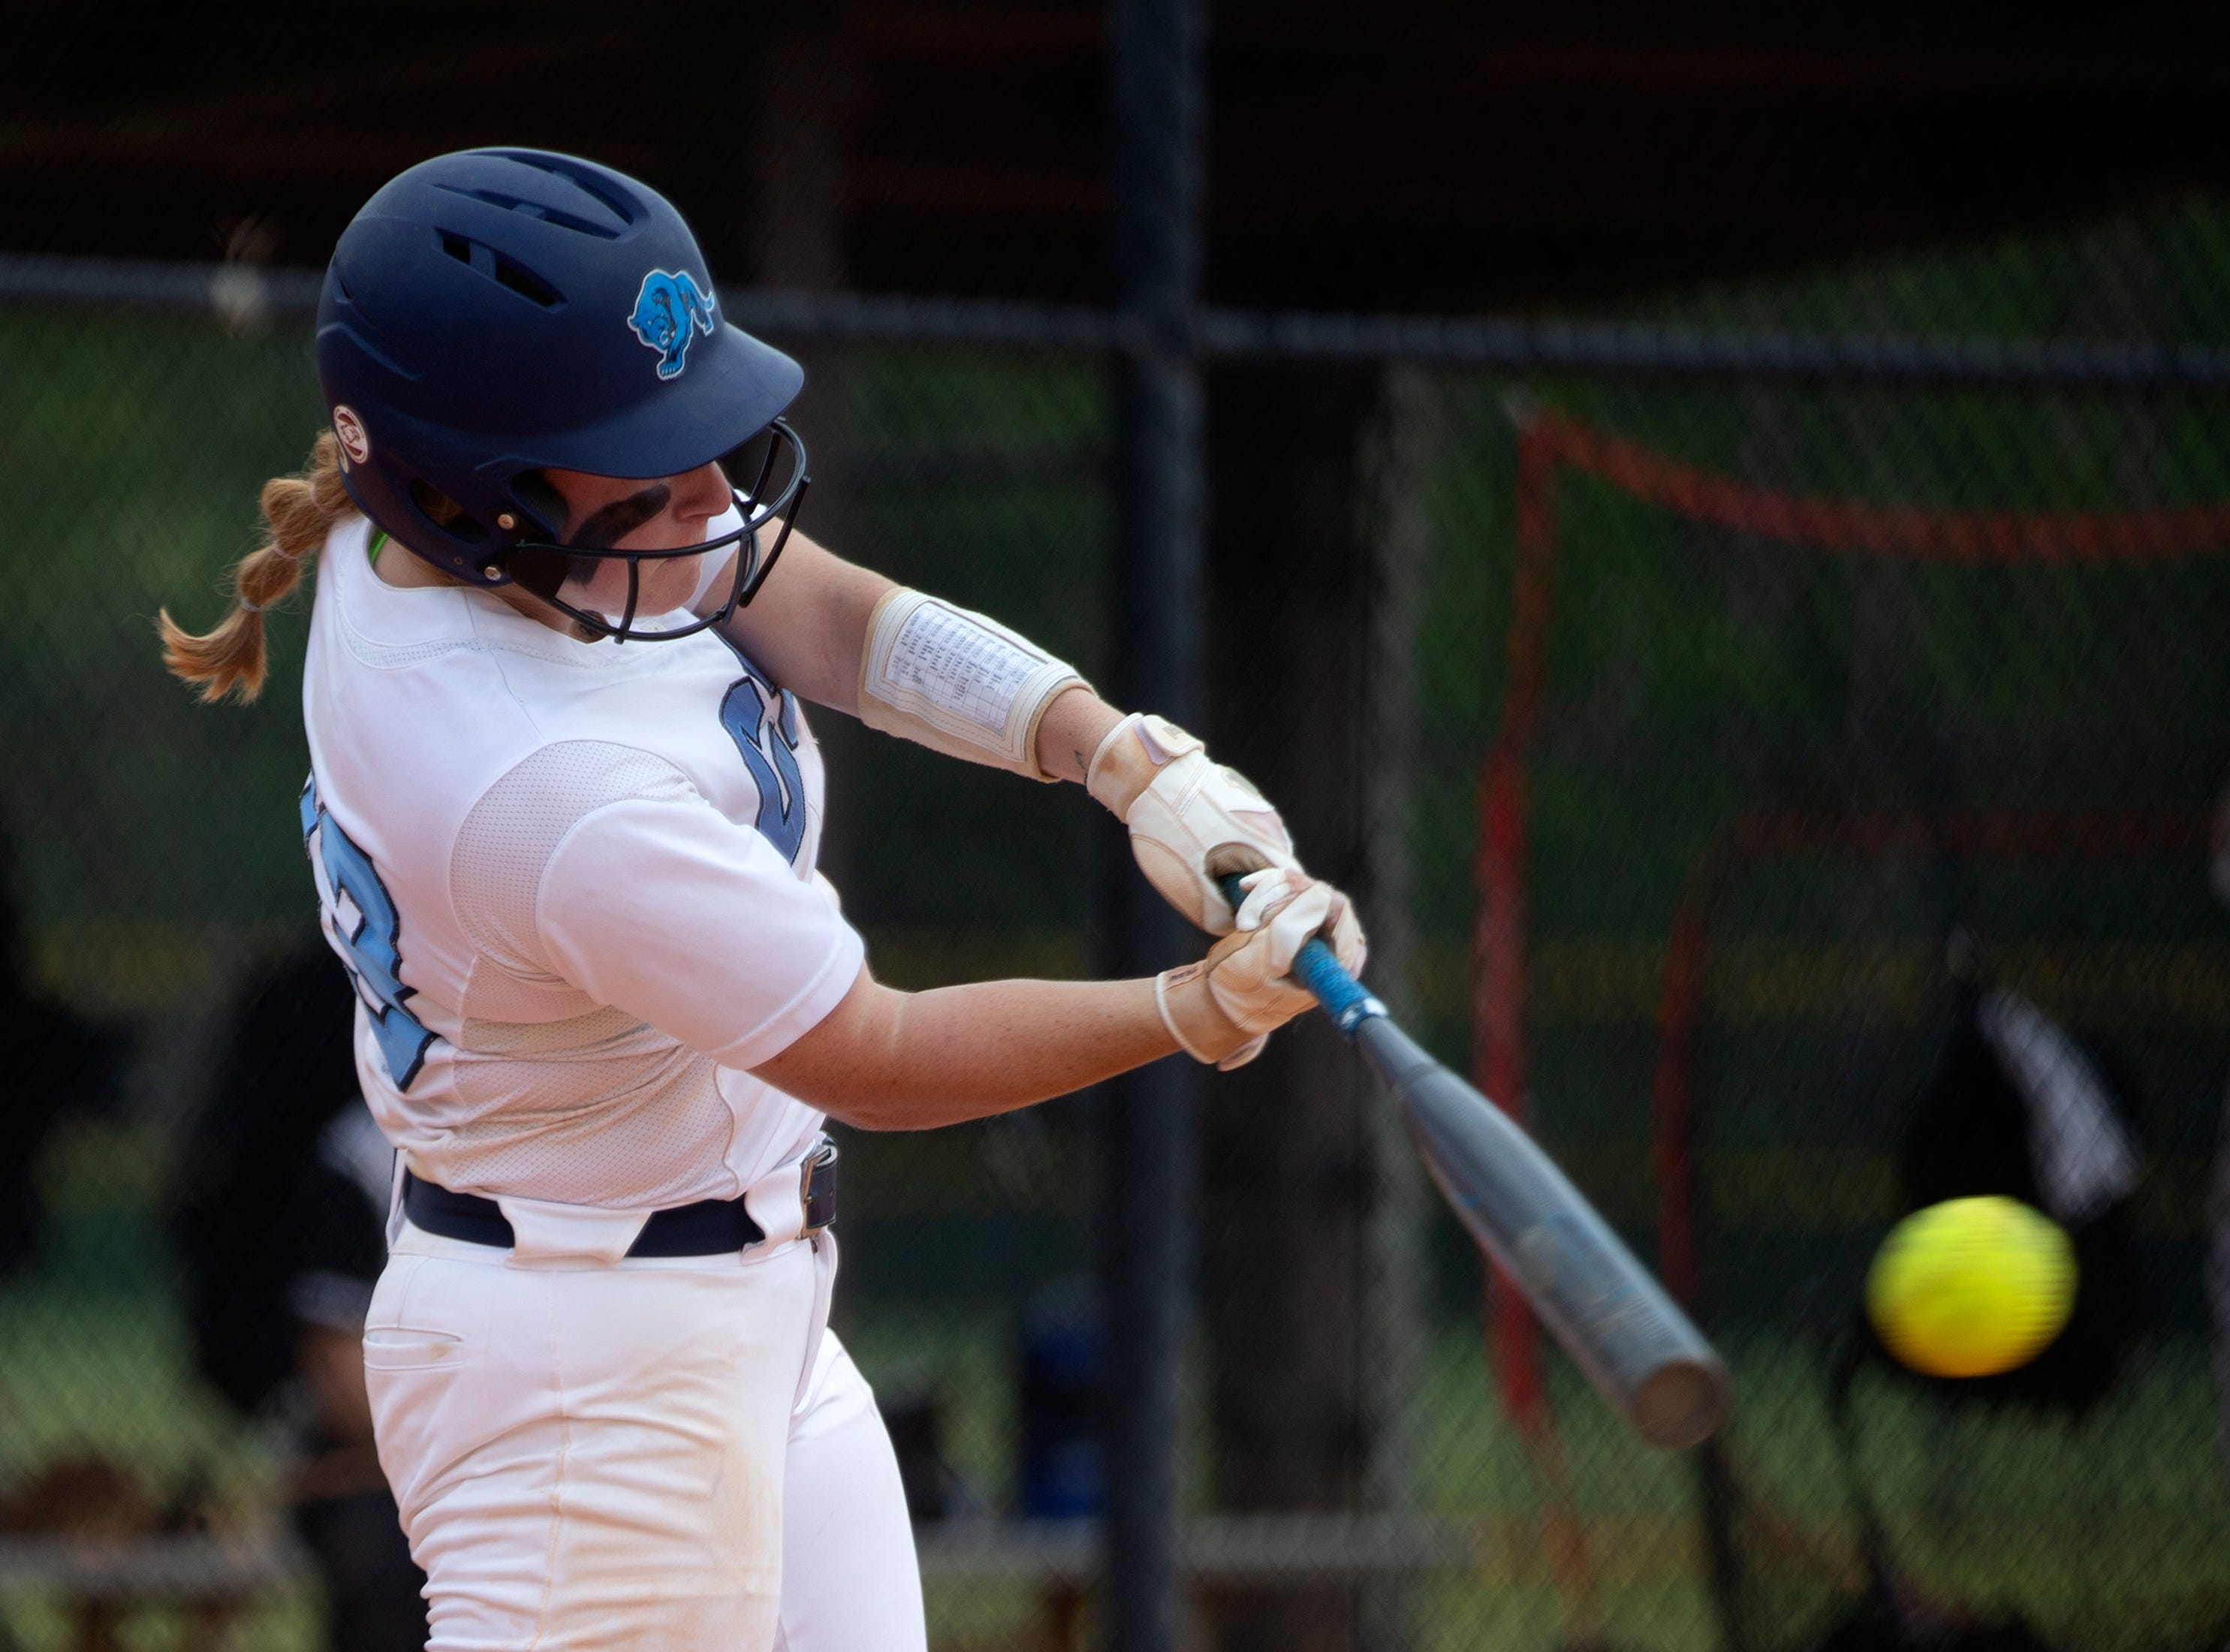 Coral Springs Charter School's Cassidy Crump connects for a base hit against Robinson during the championship game at the Longshore Memorial softball tournament, Saturday, April 13, 2019, at North Collier Regional Park in North Naples.